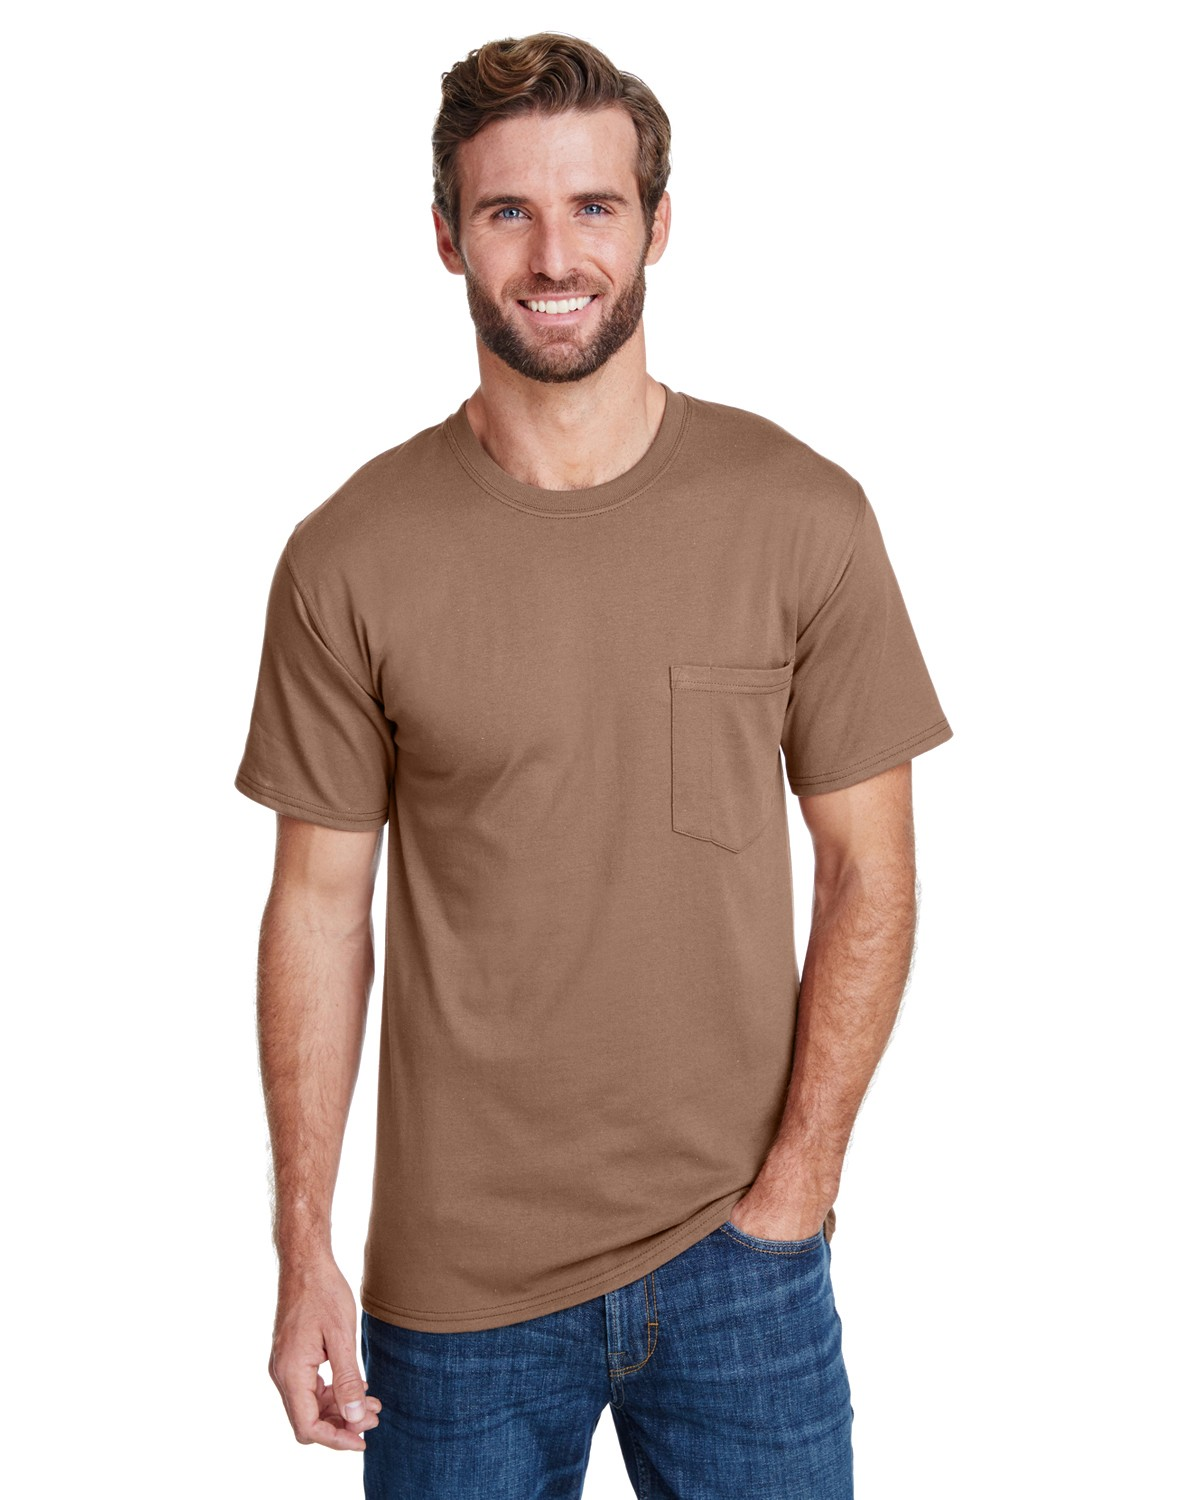 W110 Hanes ARMY BROWN